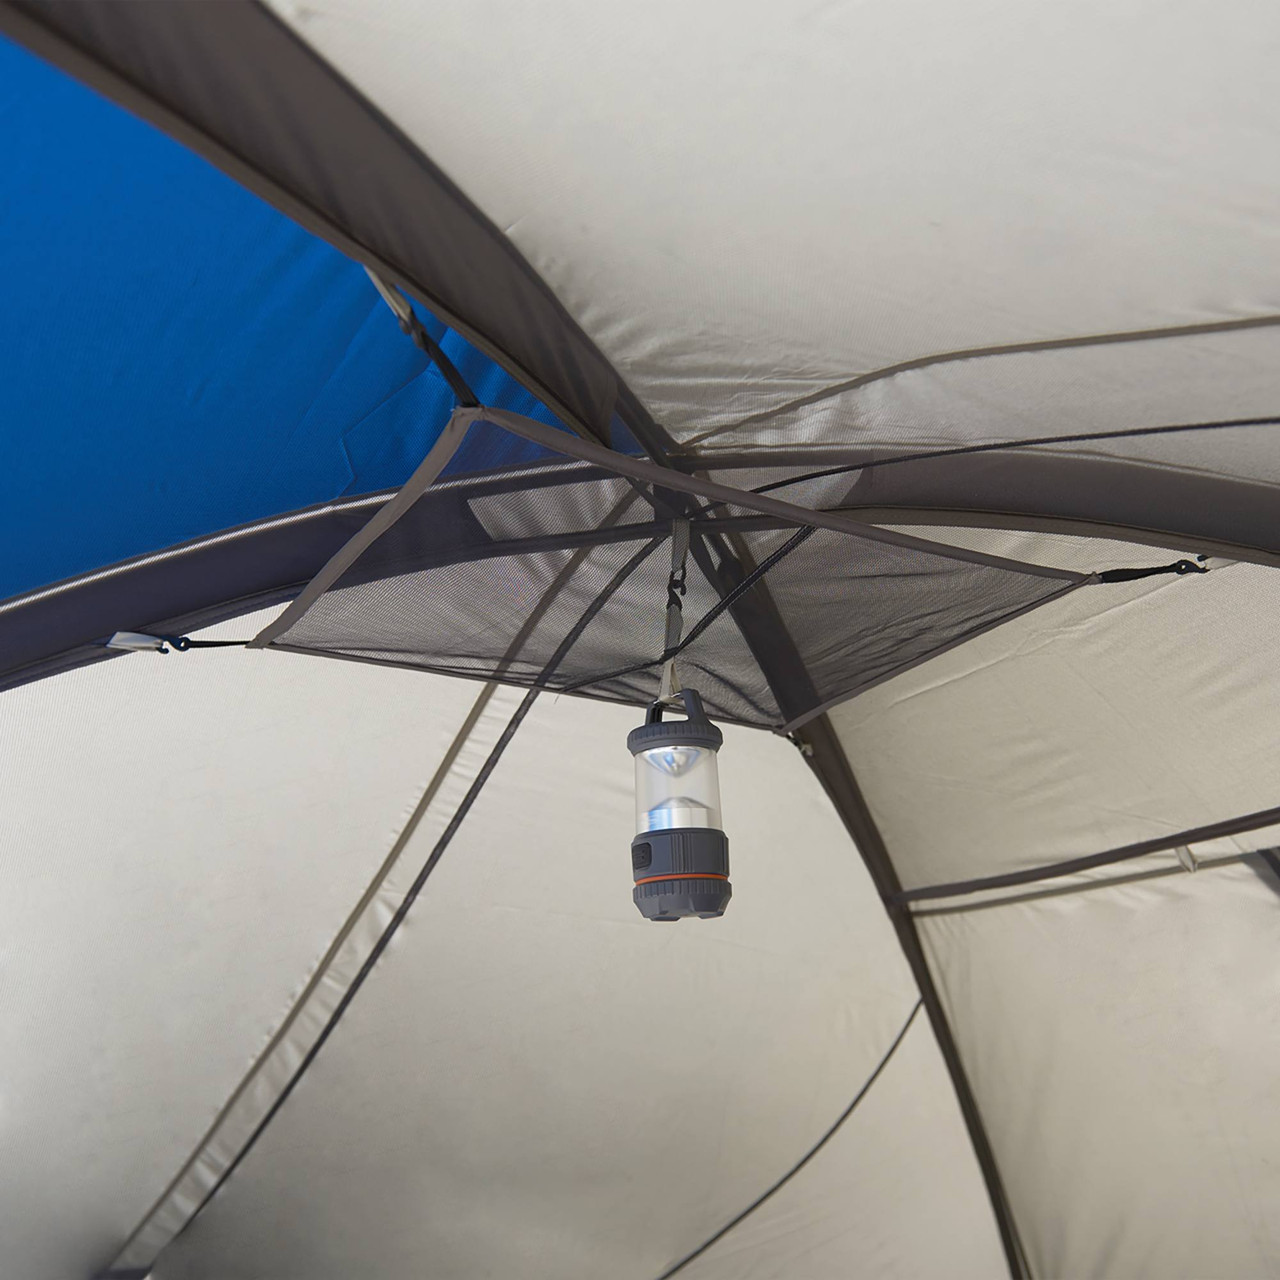 Interior of Wenzel Pinyon 10 Person Dome Tent, blue/white, showing lantern hanging from ceiling